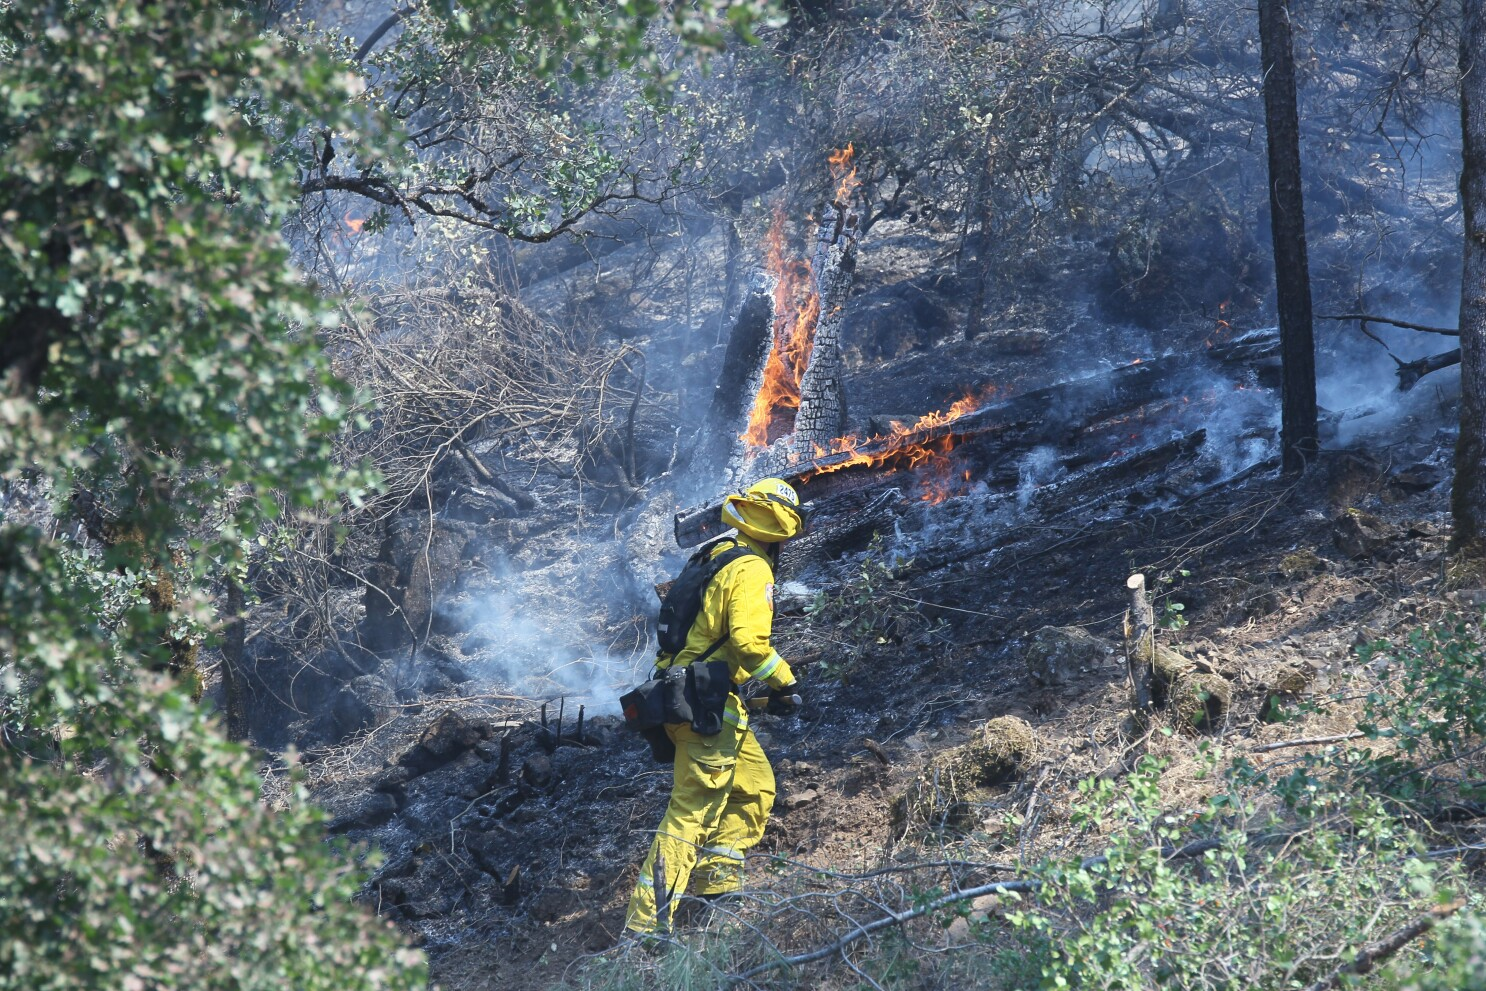 Firefighters gain upper hand against fast-moving Mountain fire in Shasta County